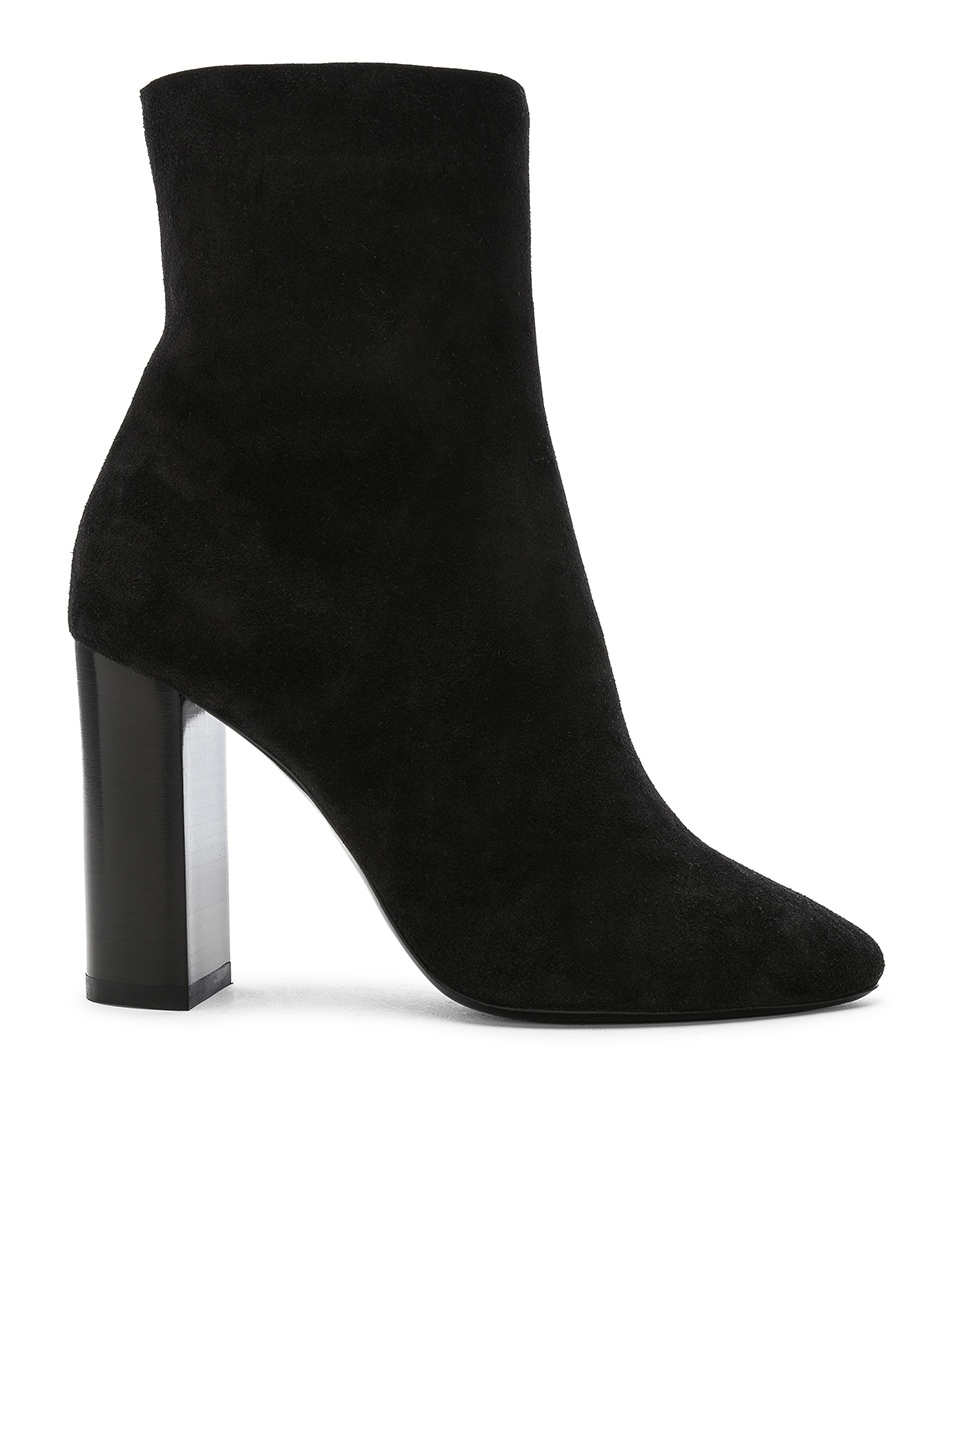 Image 1 of Saint Laurent Suede Lou Ankle Boots in Black